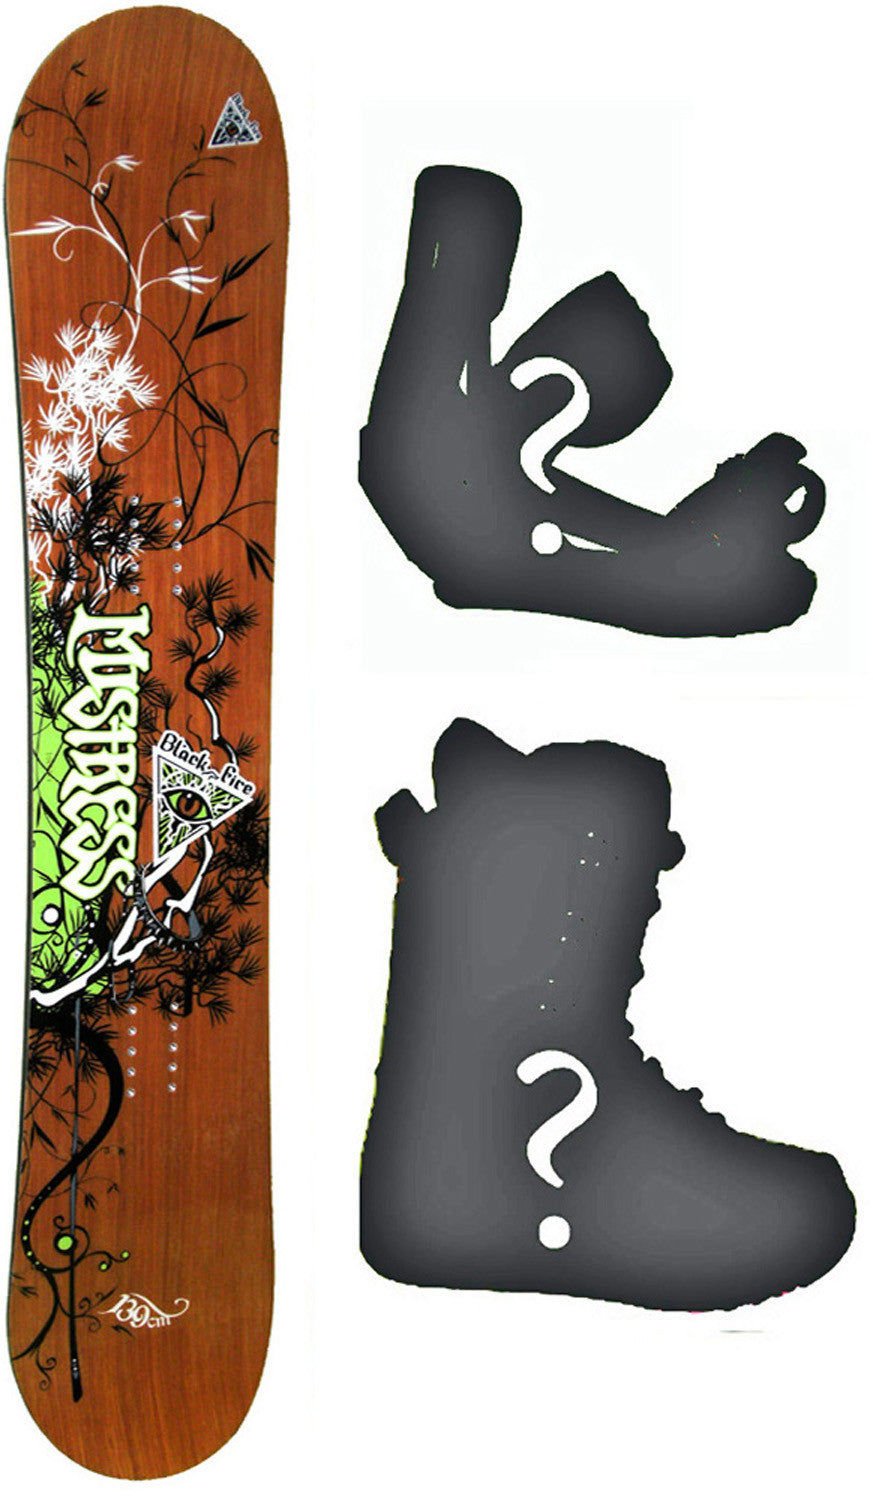 154cm  Black Fire Mistress Rocker Snowboard, Build a Package with Boots and Bindings